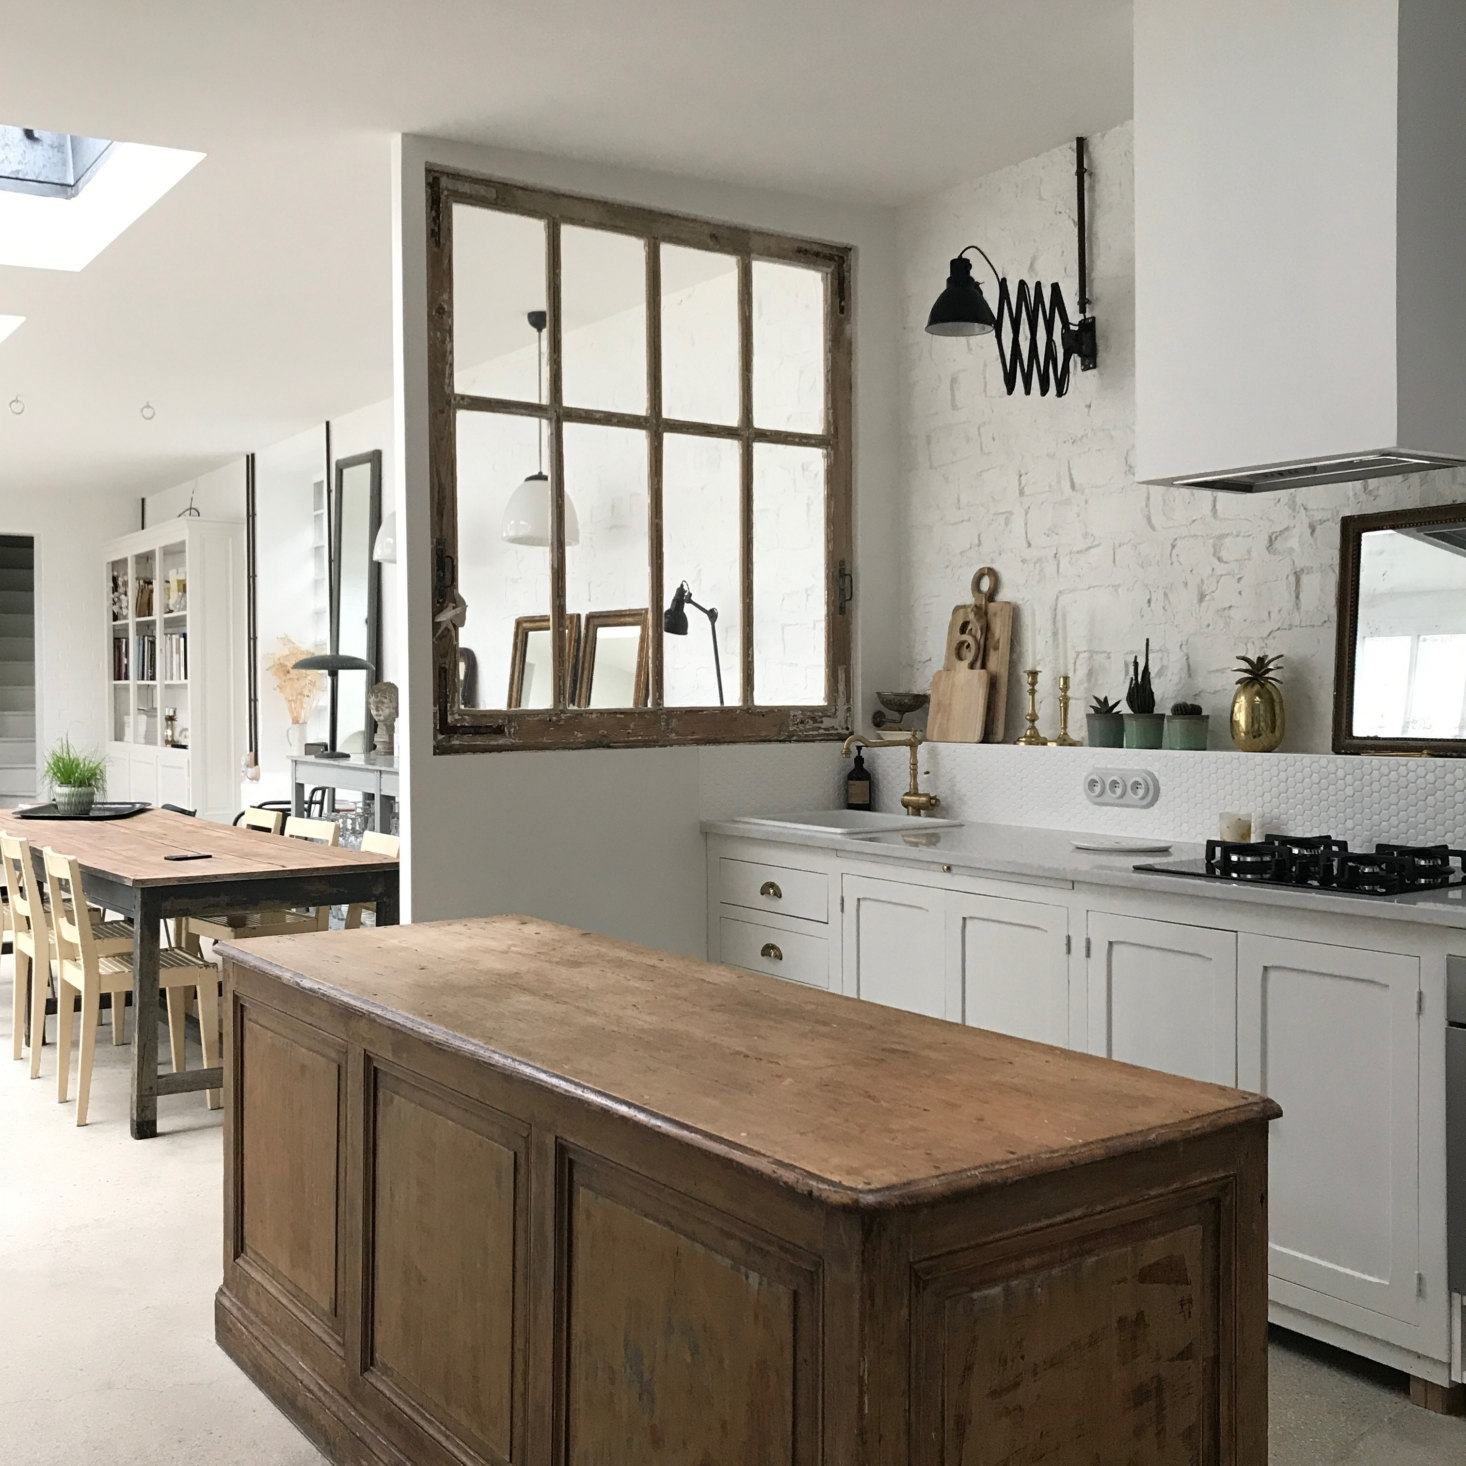 "Kitchen of the Week: ""Preserving the Spirit of the Old"" in Reims, France"